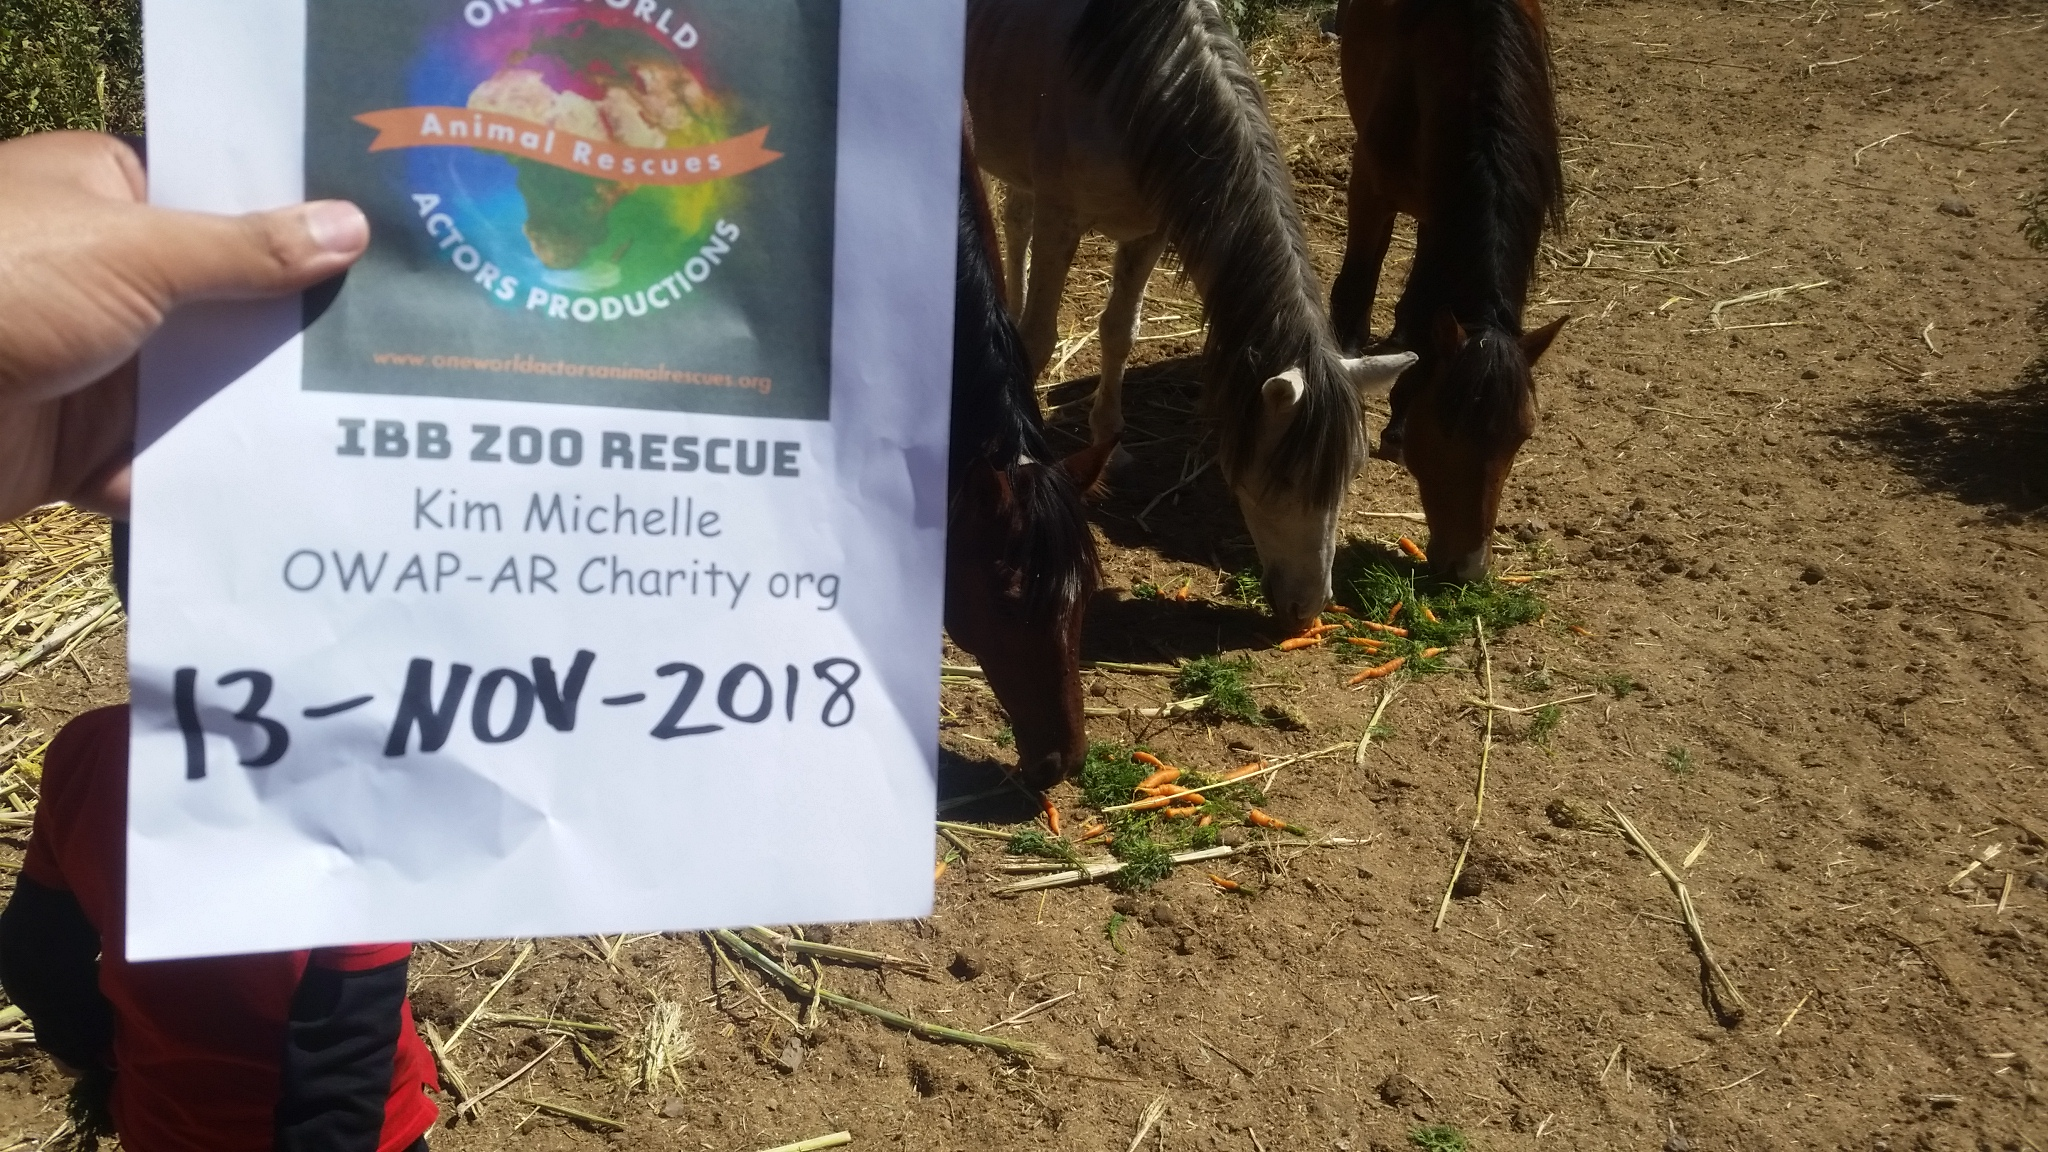 ibb zoo carrots for the horses poor mites hisham pic OWAP -AR Charity providing 13 NOV 2018.jpg